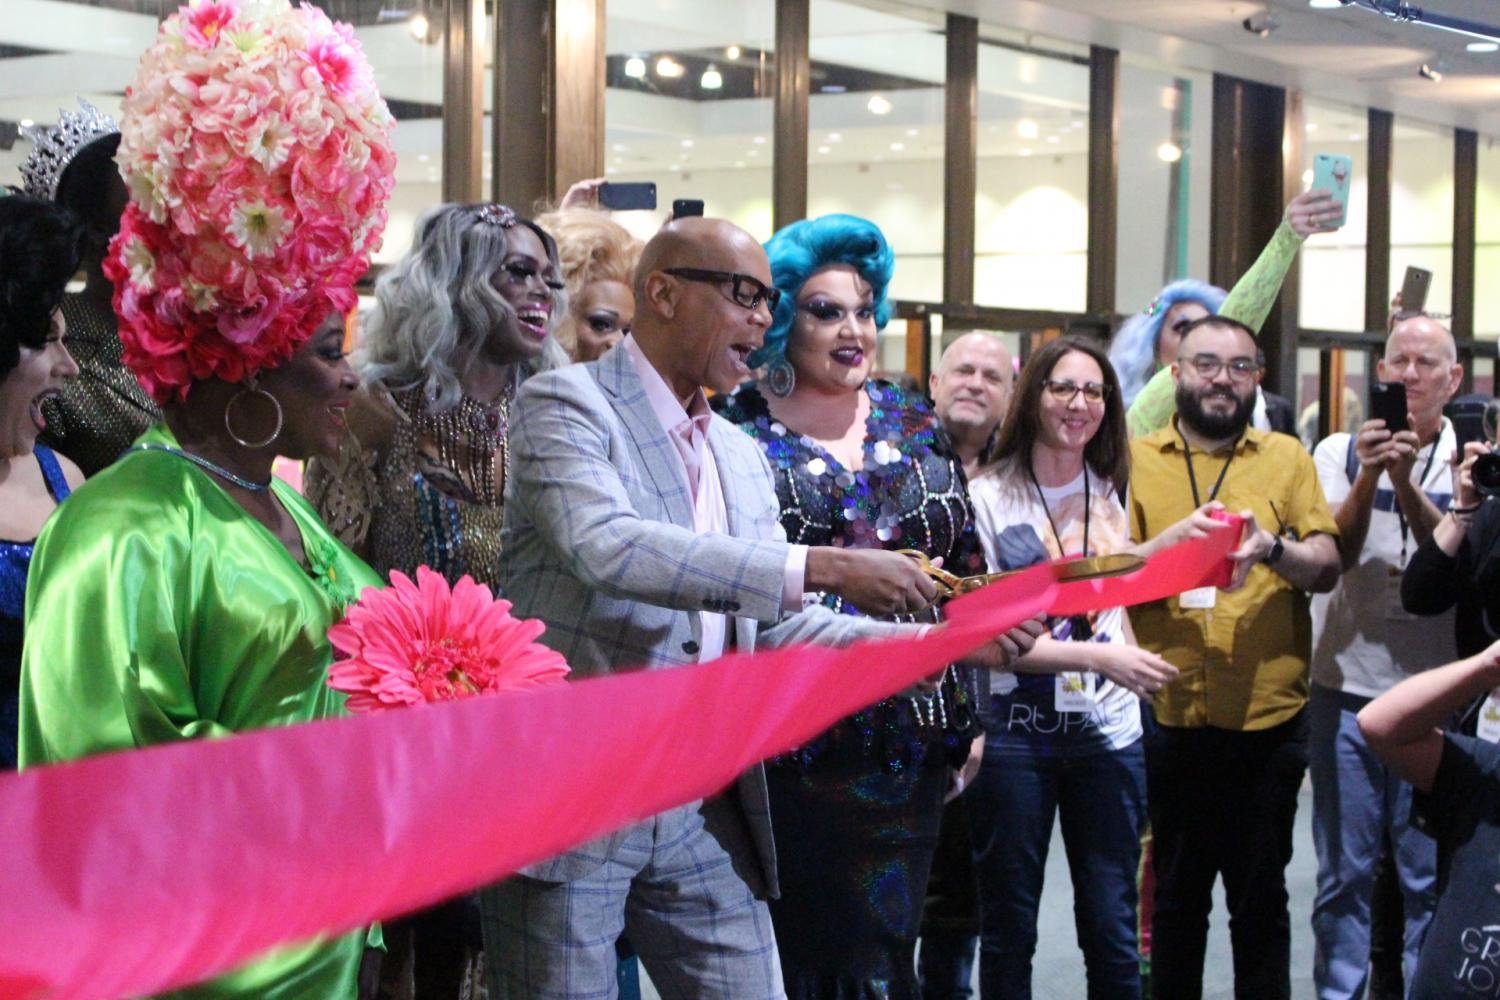 RuPaul+and+the+cast+of+season+9+kick-off+third+annual+DragCon+on+April+29.%0A%0A